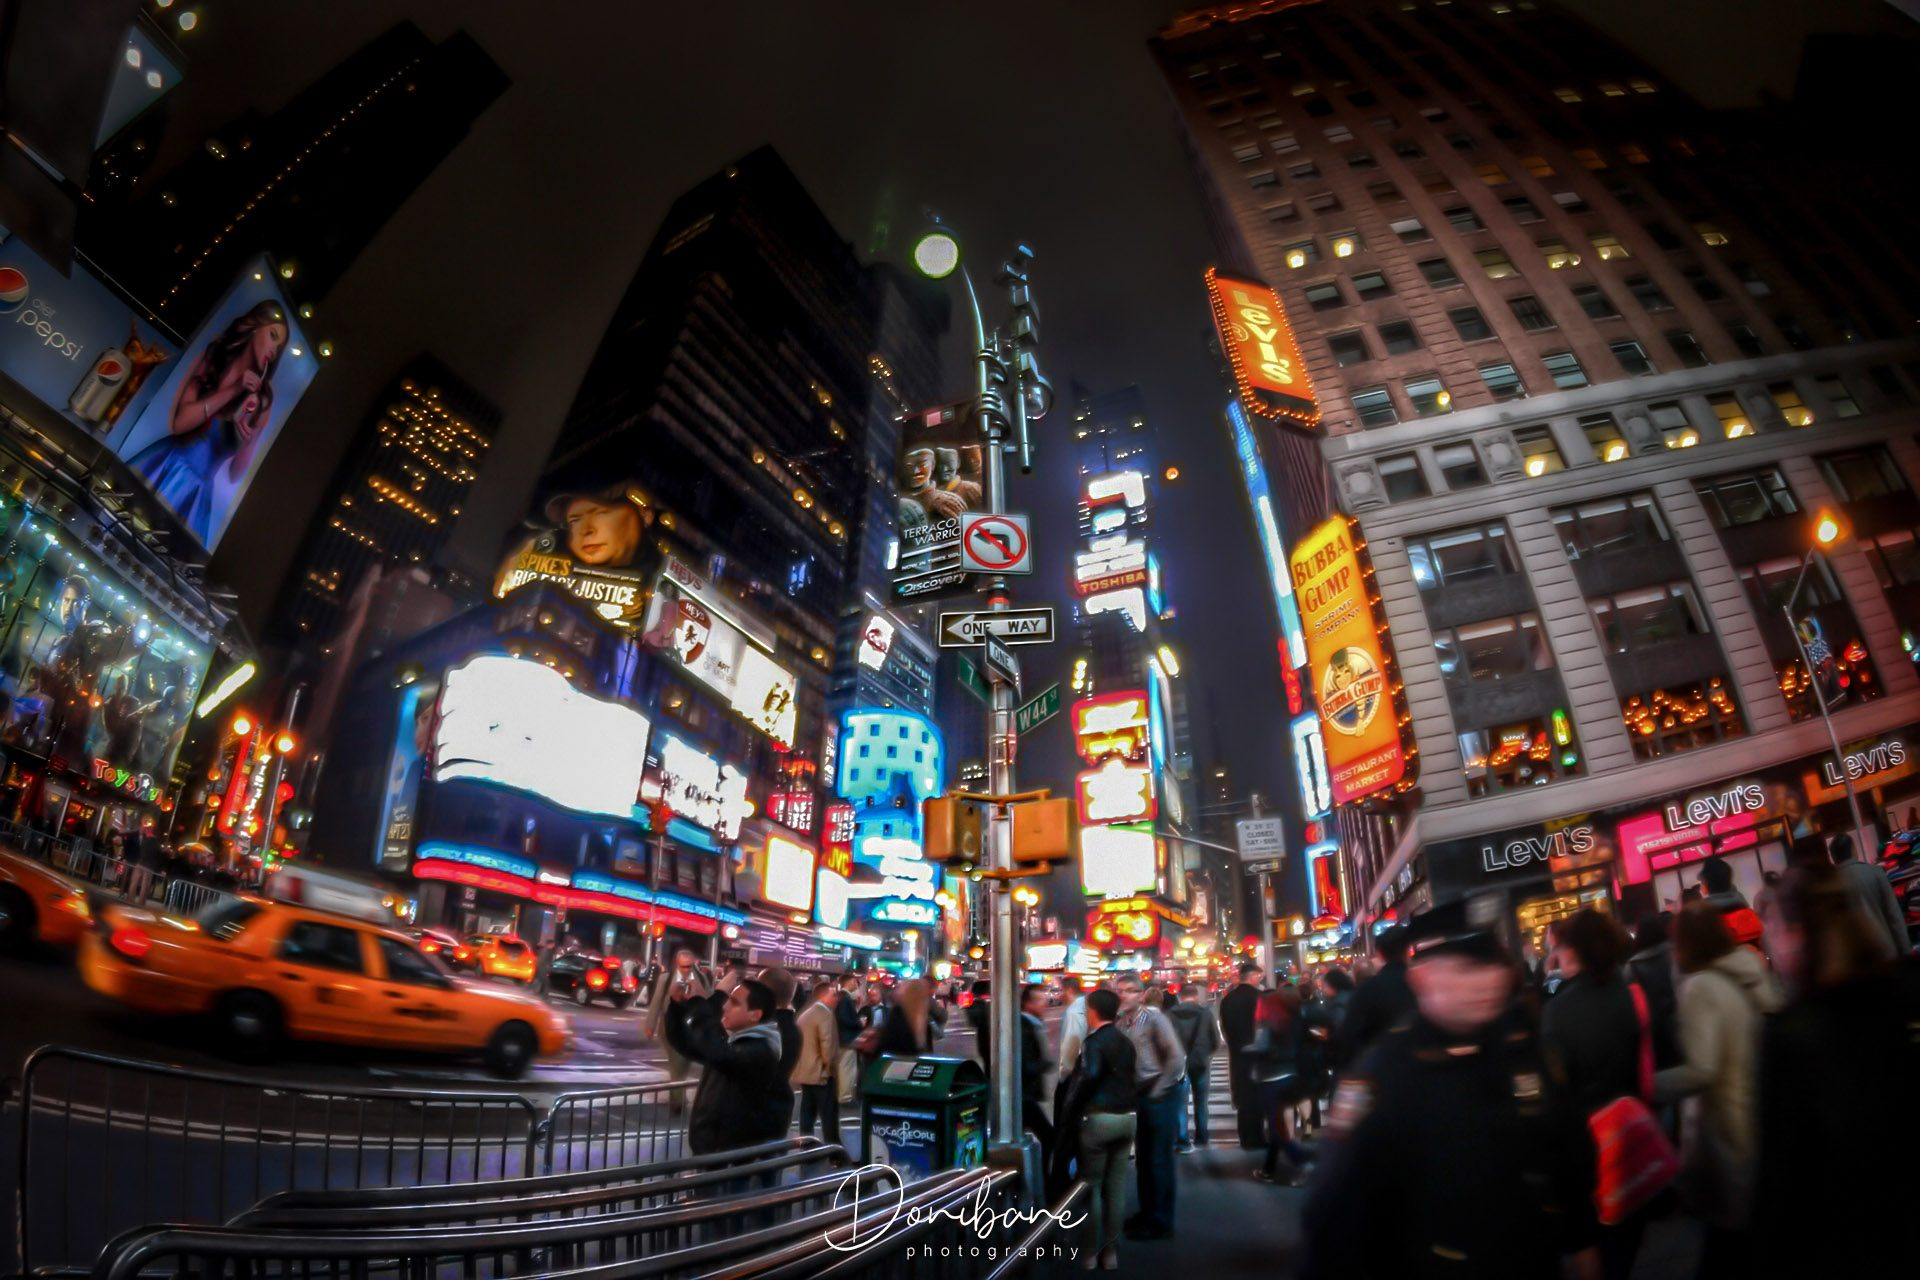 New York Street Lights by Donibane